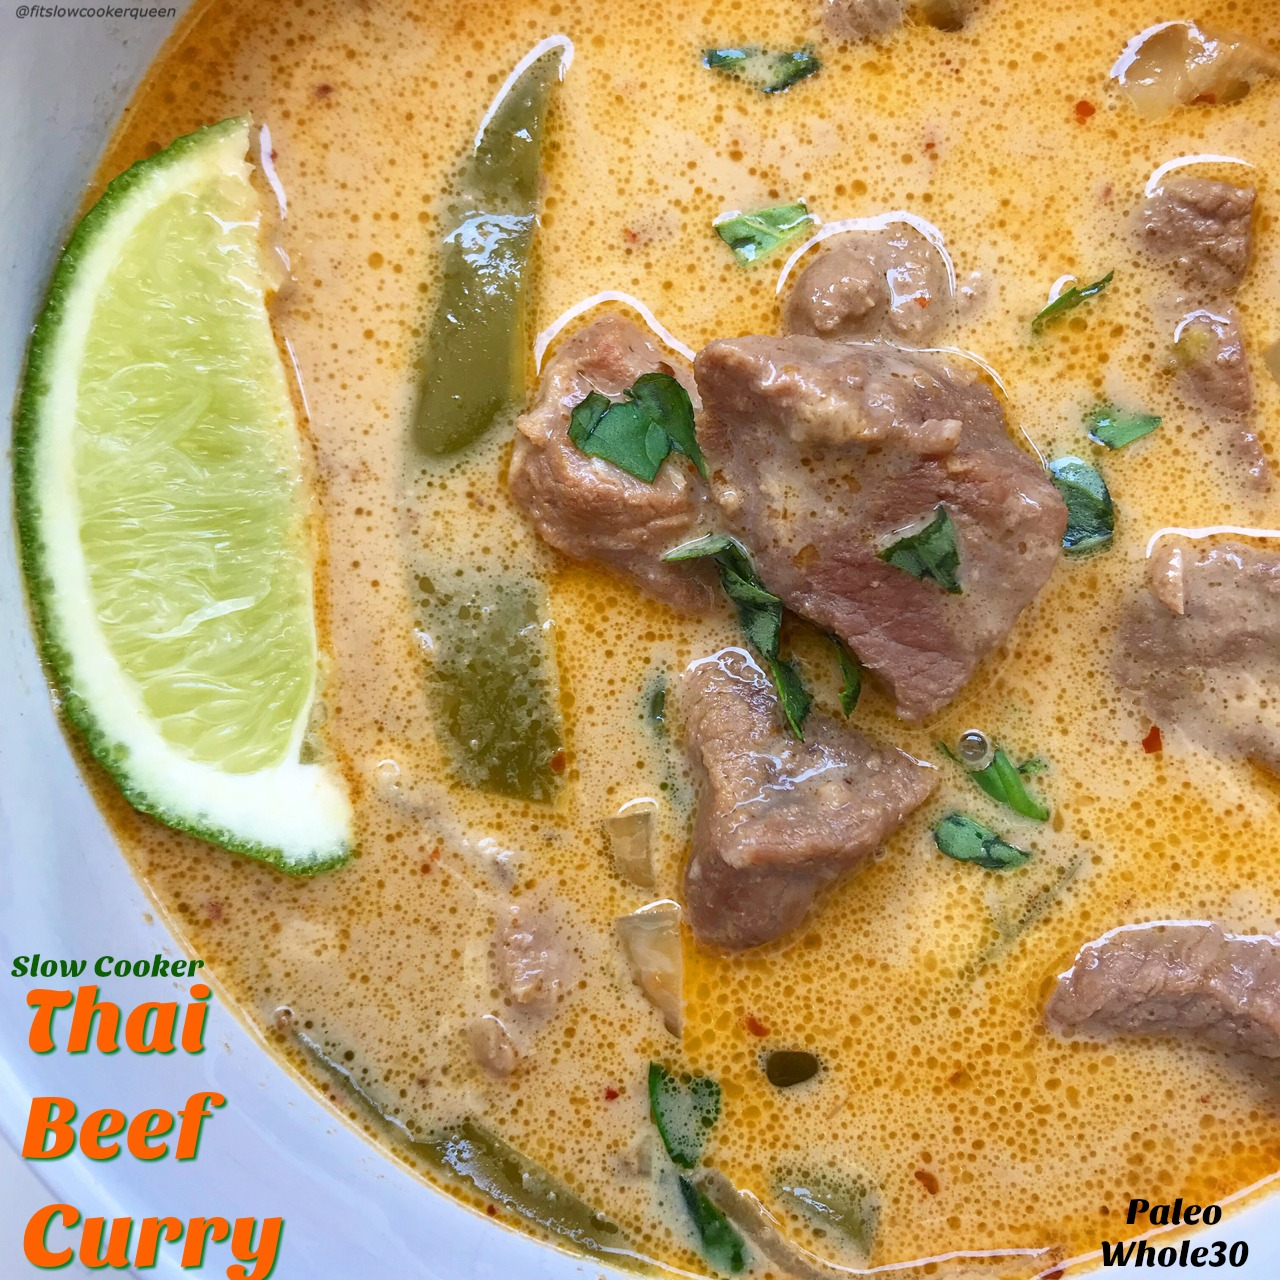 This easy Thai beef curry recipe is all about the healthy, homemade coconut-curry sauce. It's low-sodium, vegan, paleo, whole30, etc. Just add protein, vegetables of your choice, and let your slow cooker do the work.